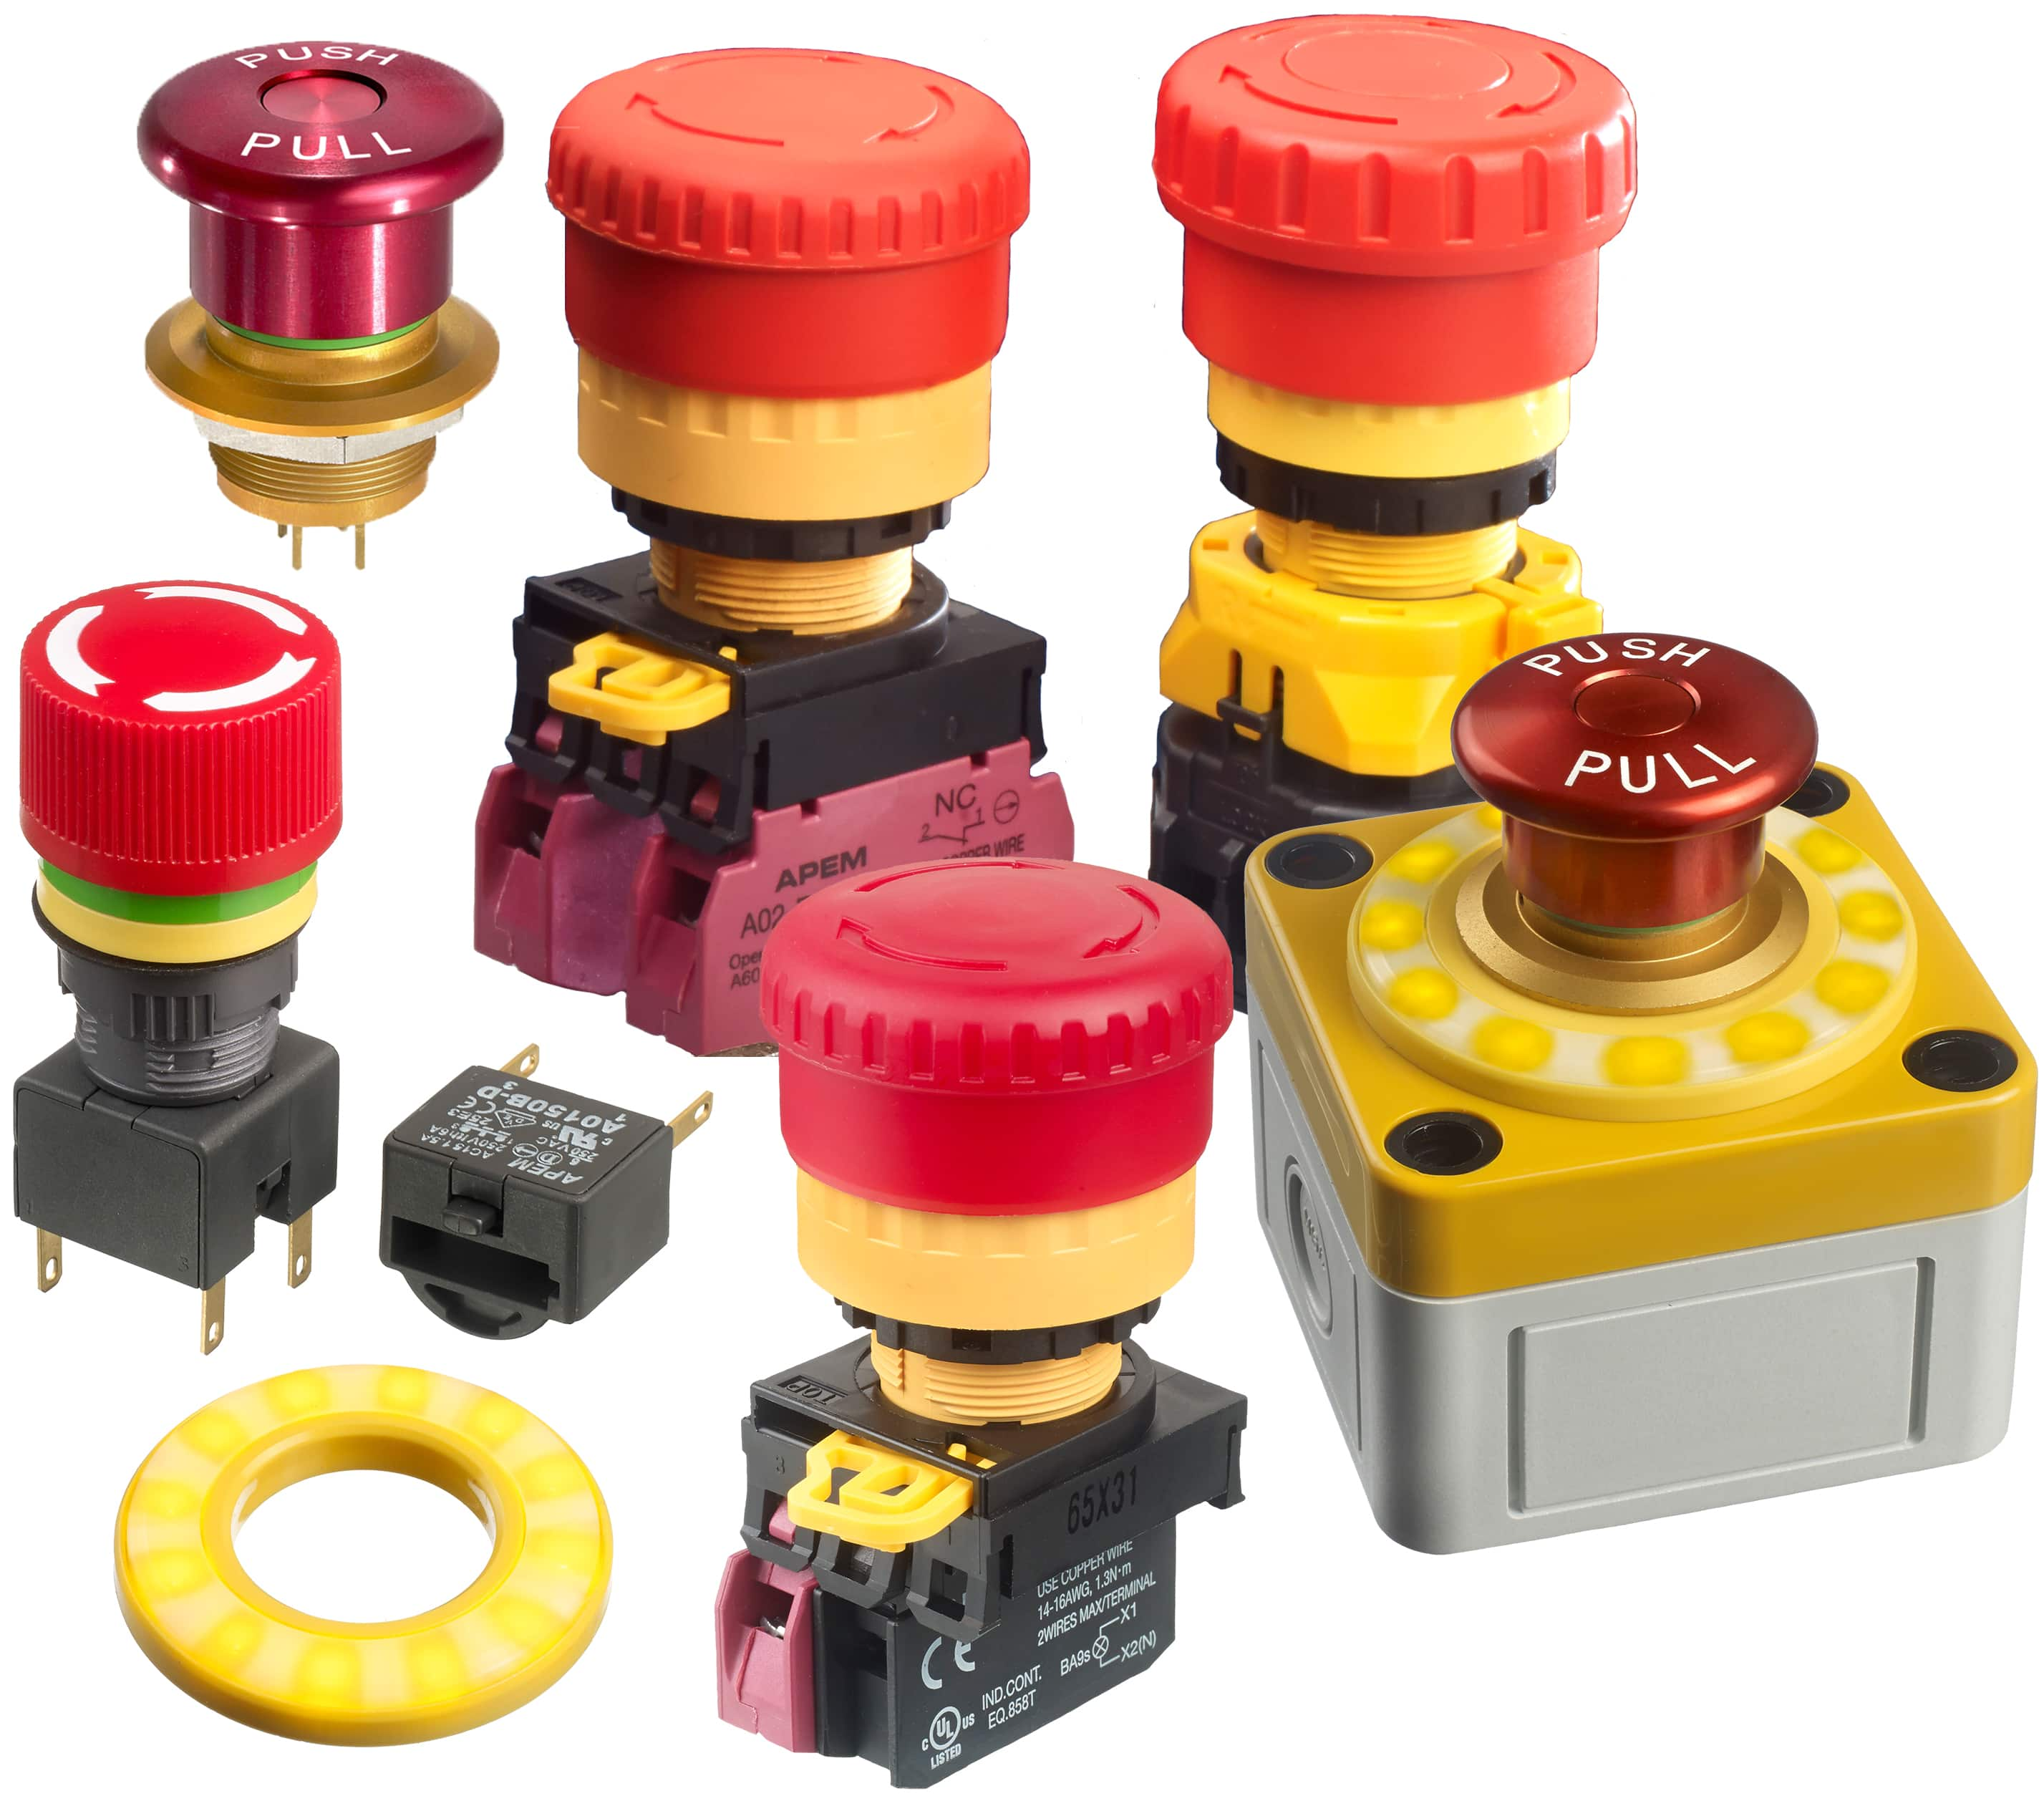 small resolution of image of apem s emergency stop switches and accessories